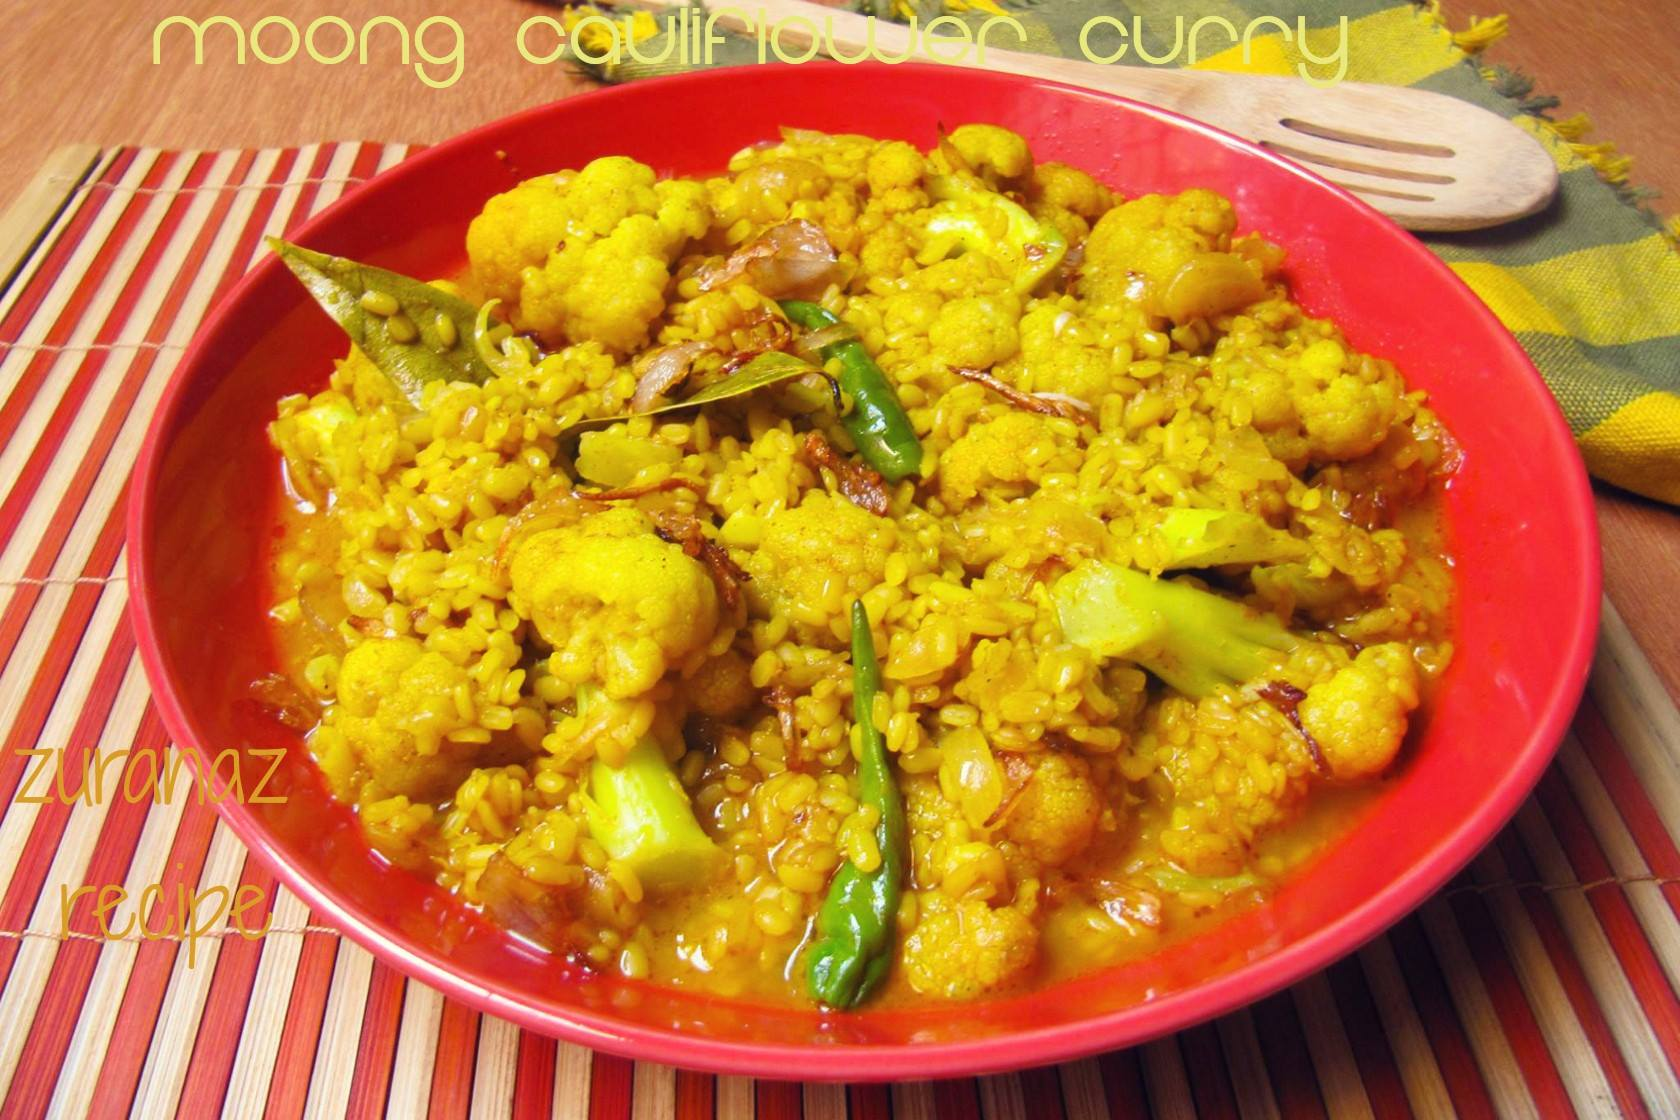 Moongdal with Cauliflower/Vegetable and Lentil Curry